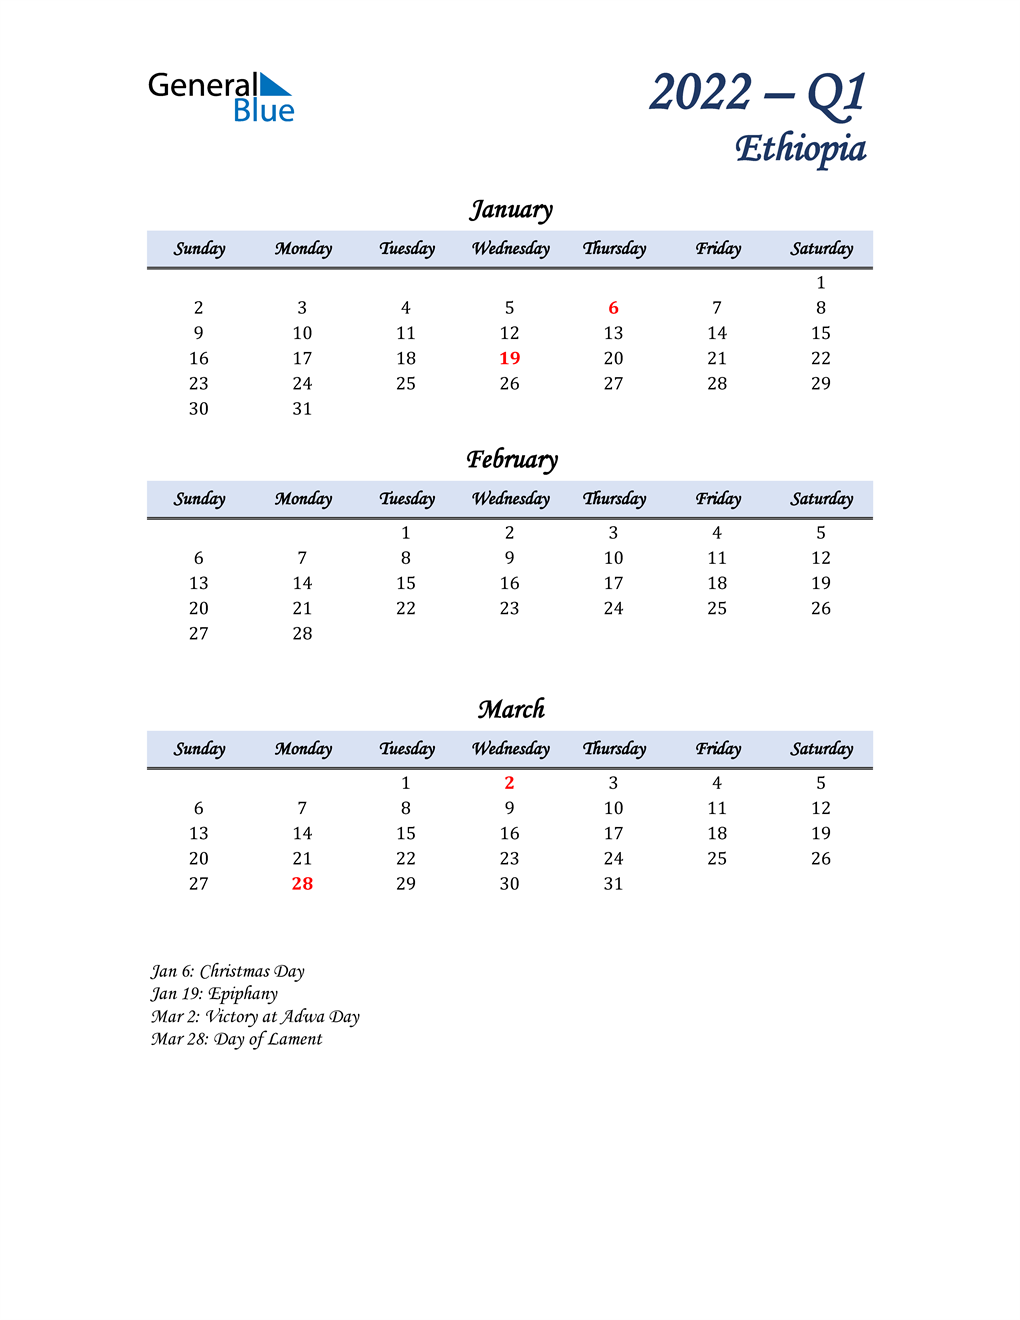 January, February, and March Calendar for Ethiopia